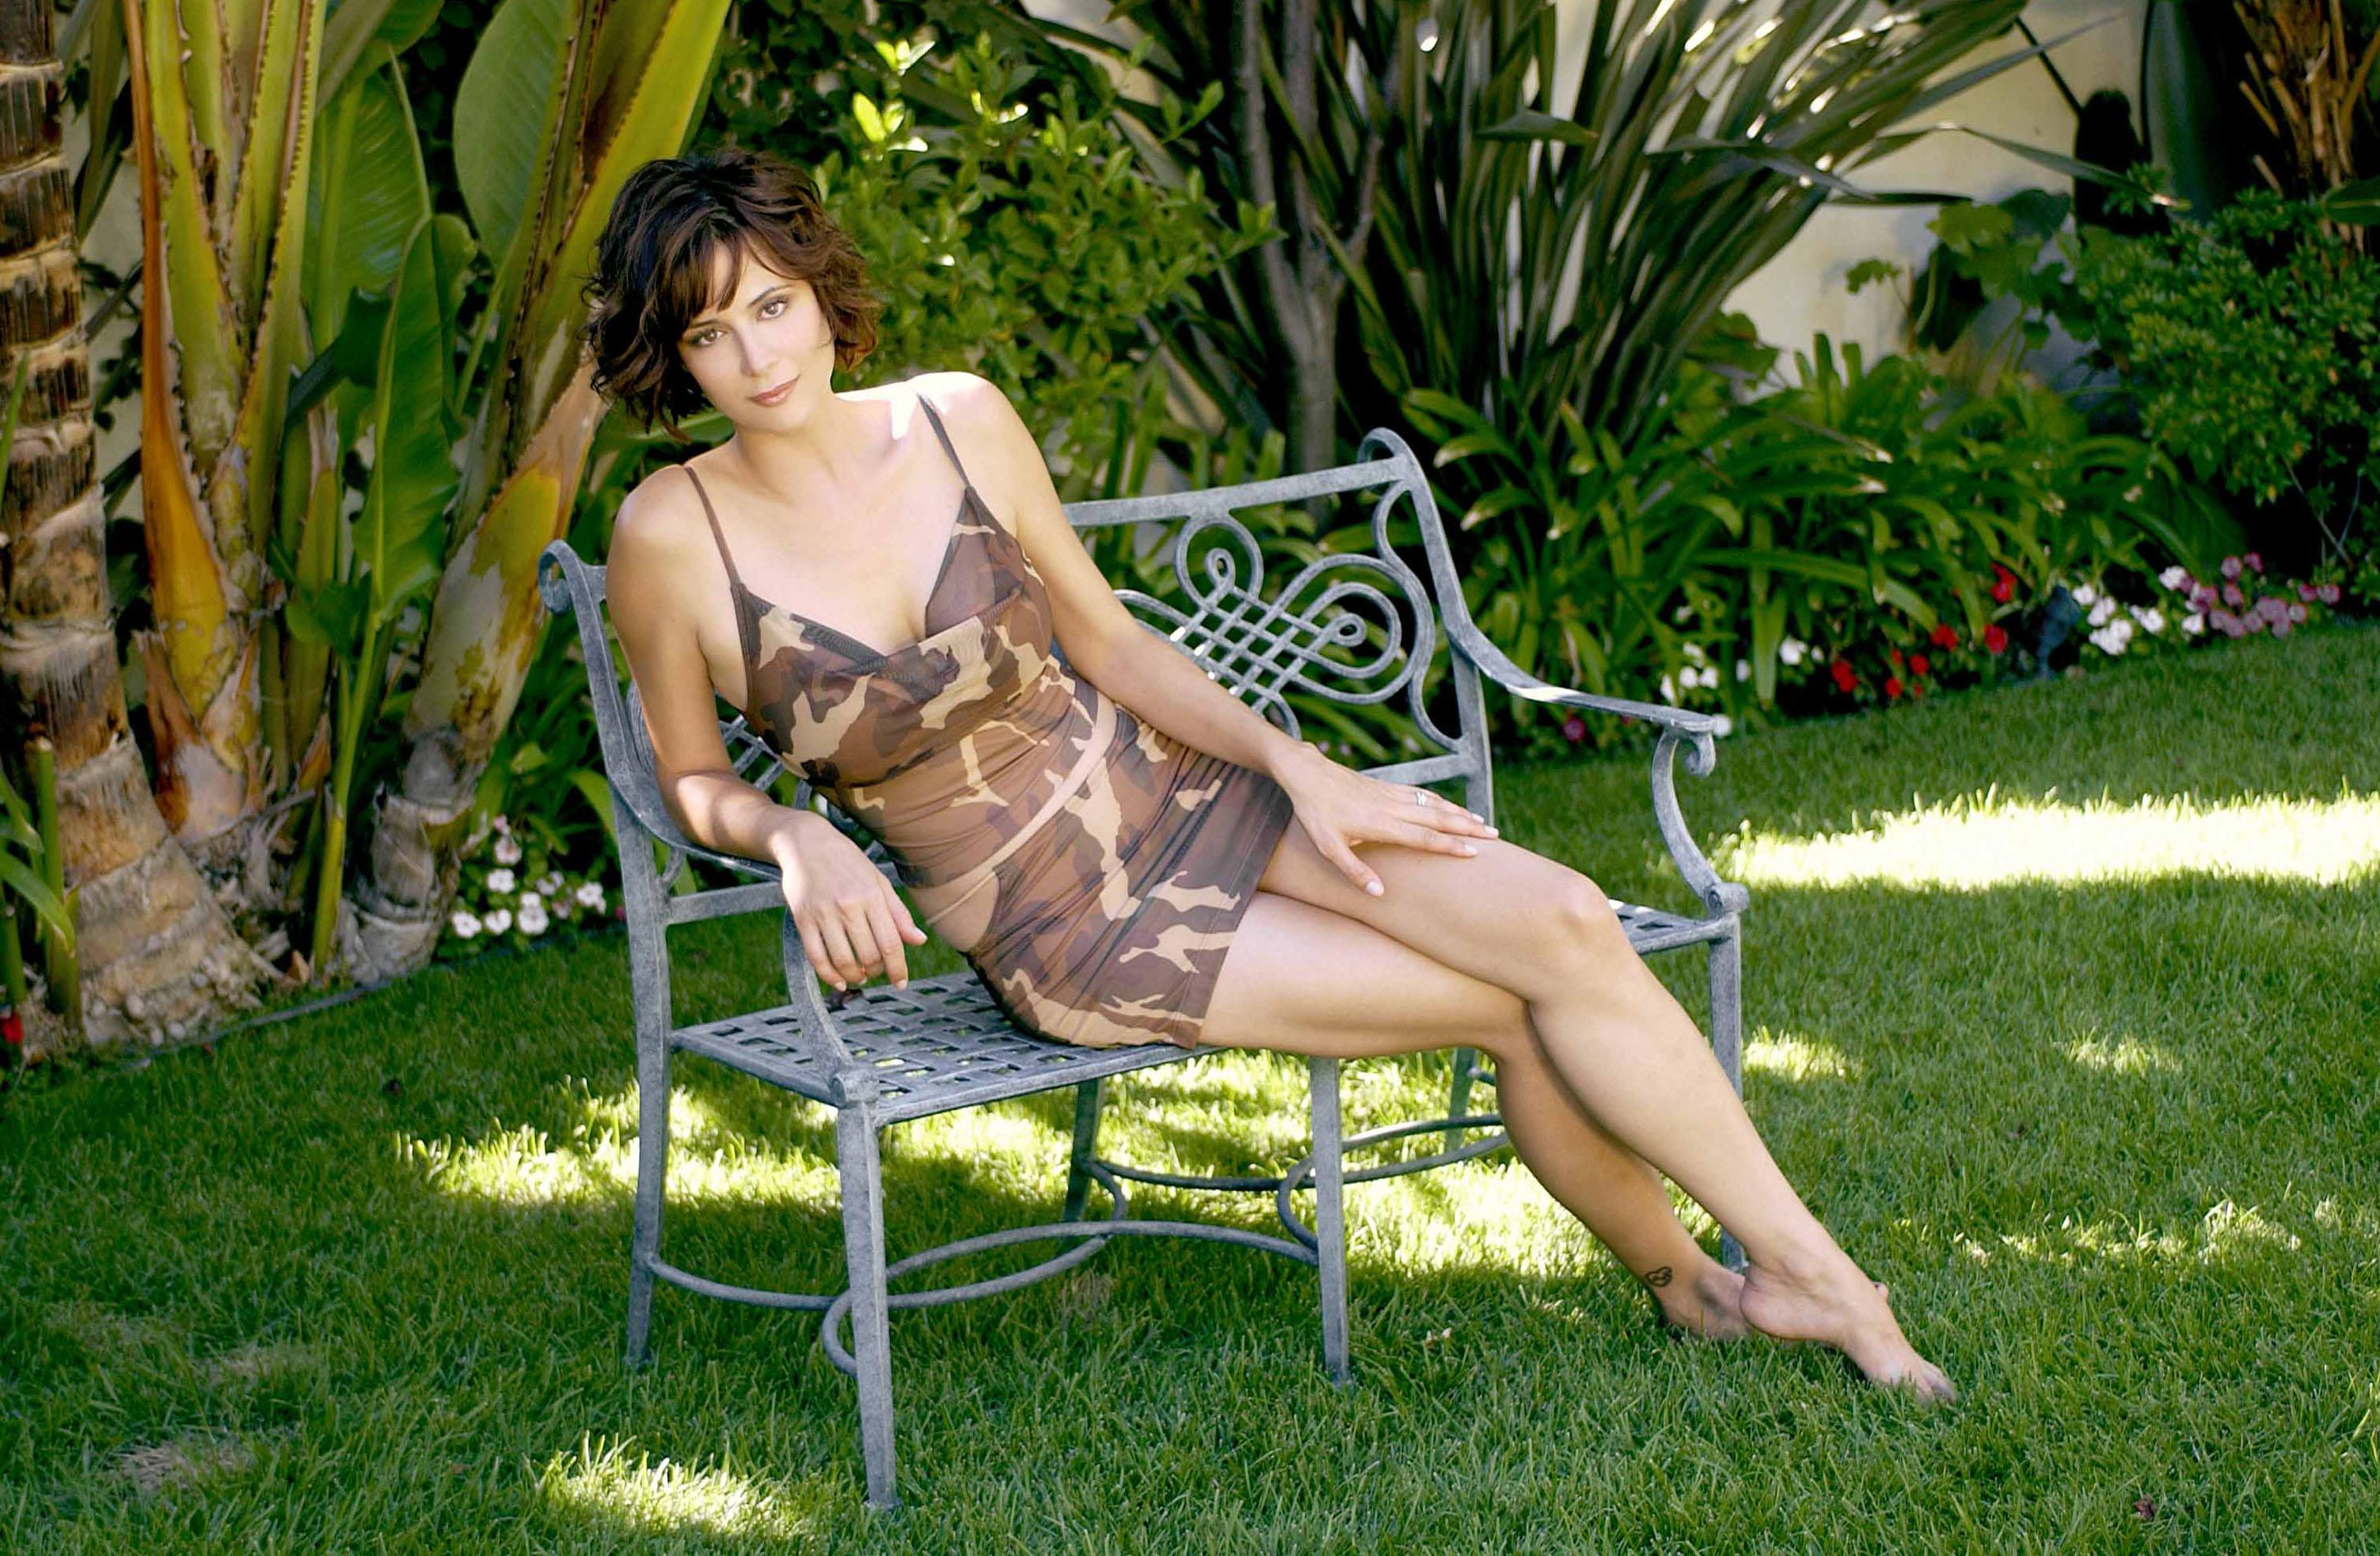 Catherine Bell photo 14 of 57 pics, wallpaper - photo #33093 ...